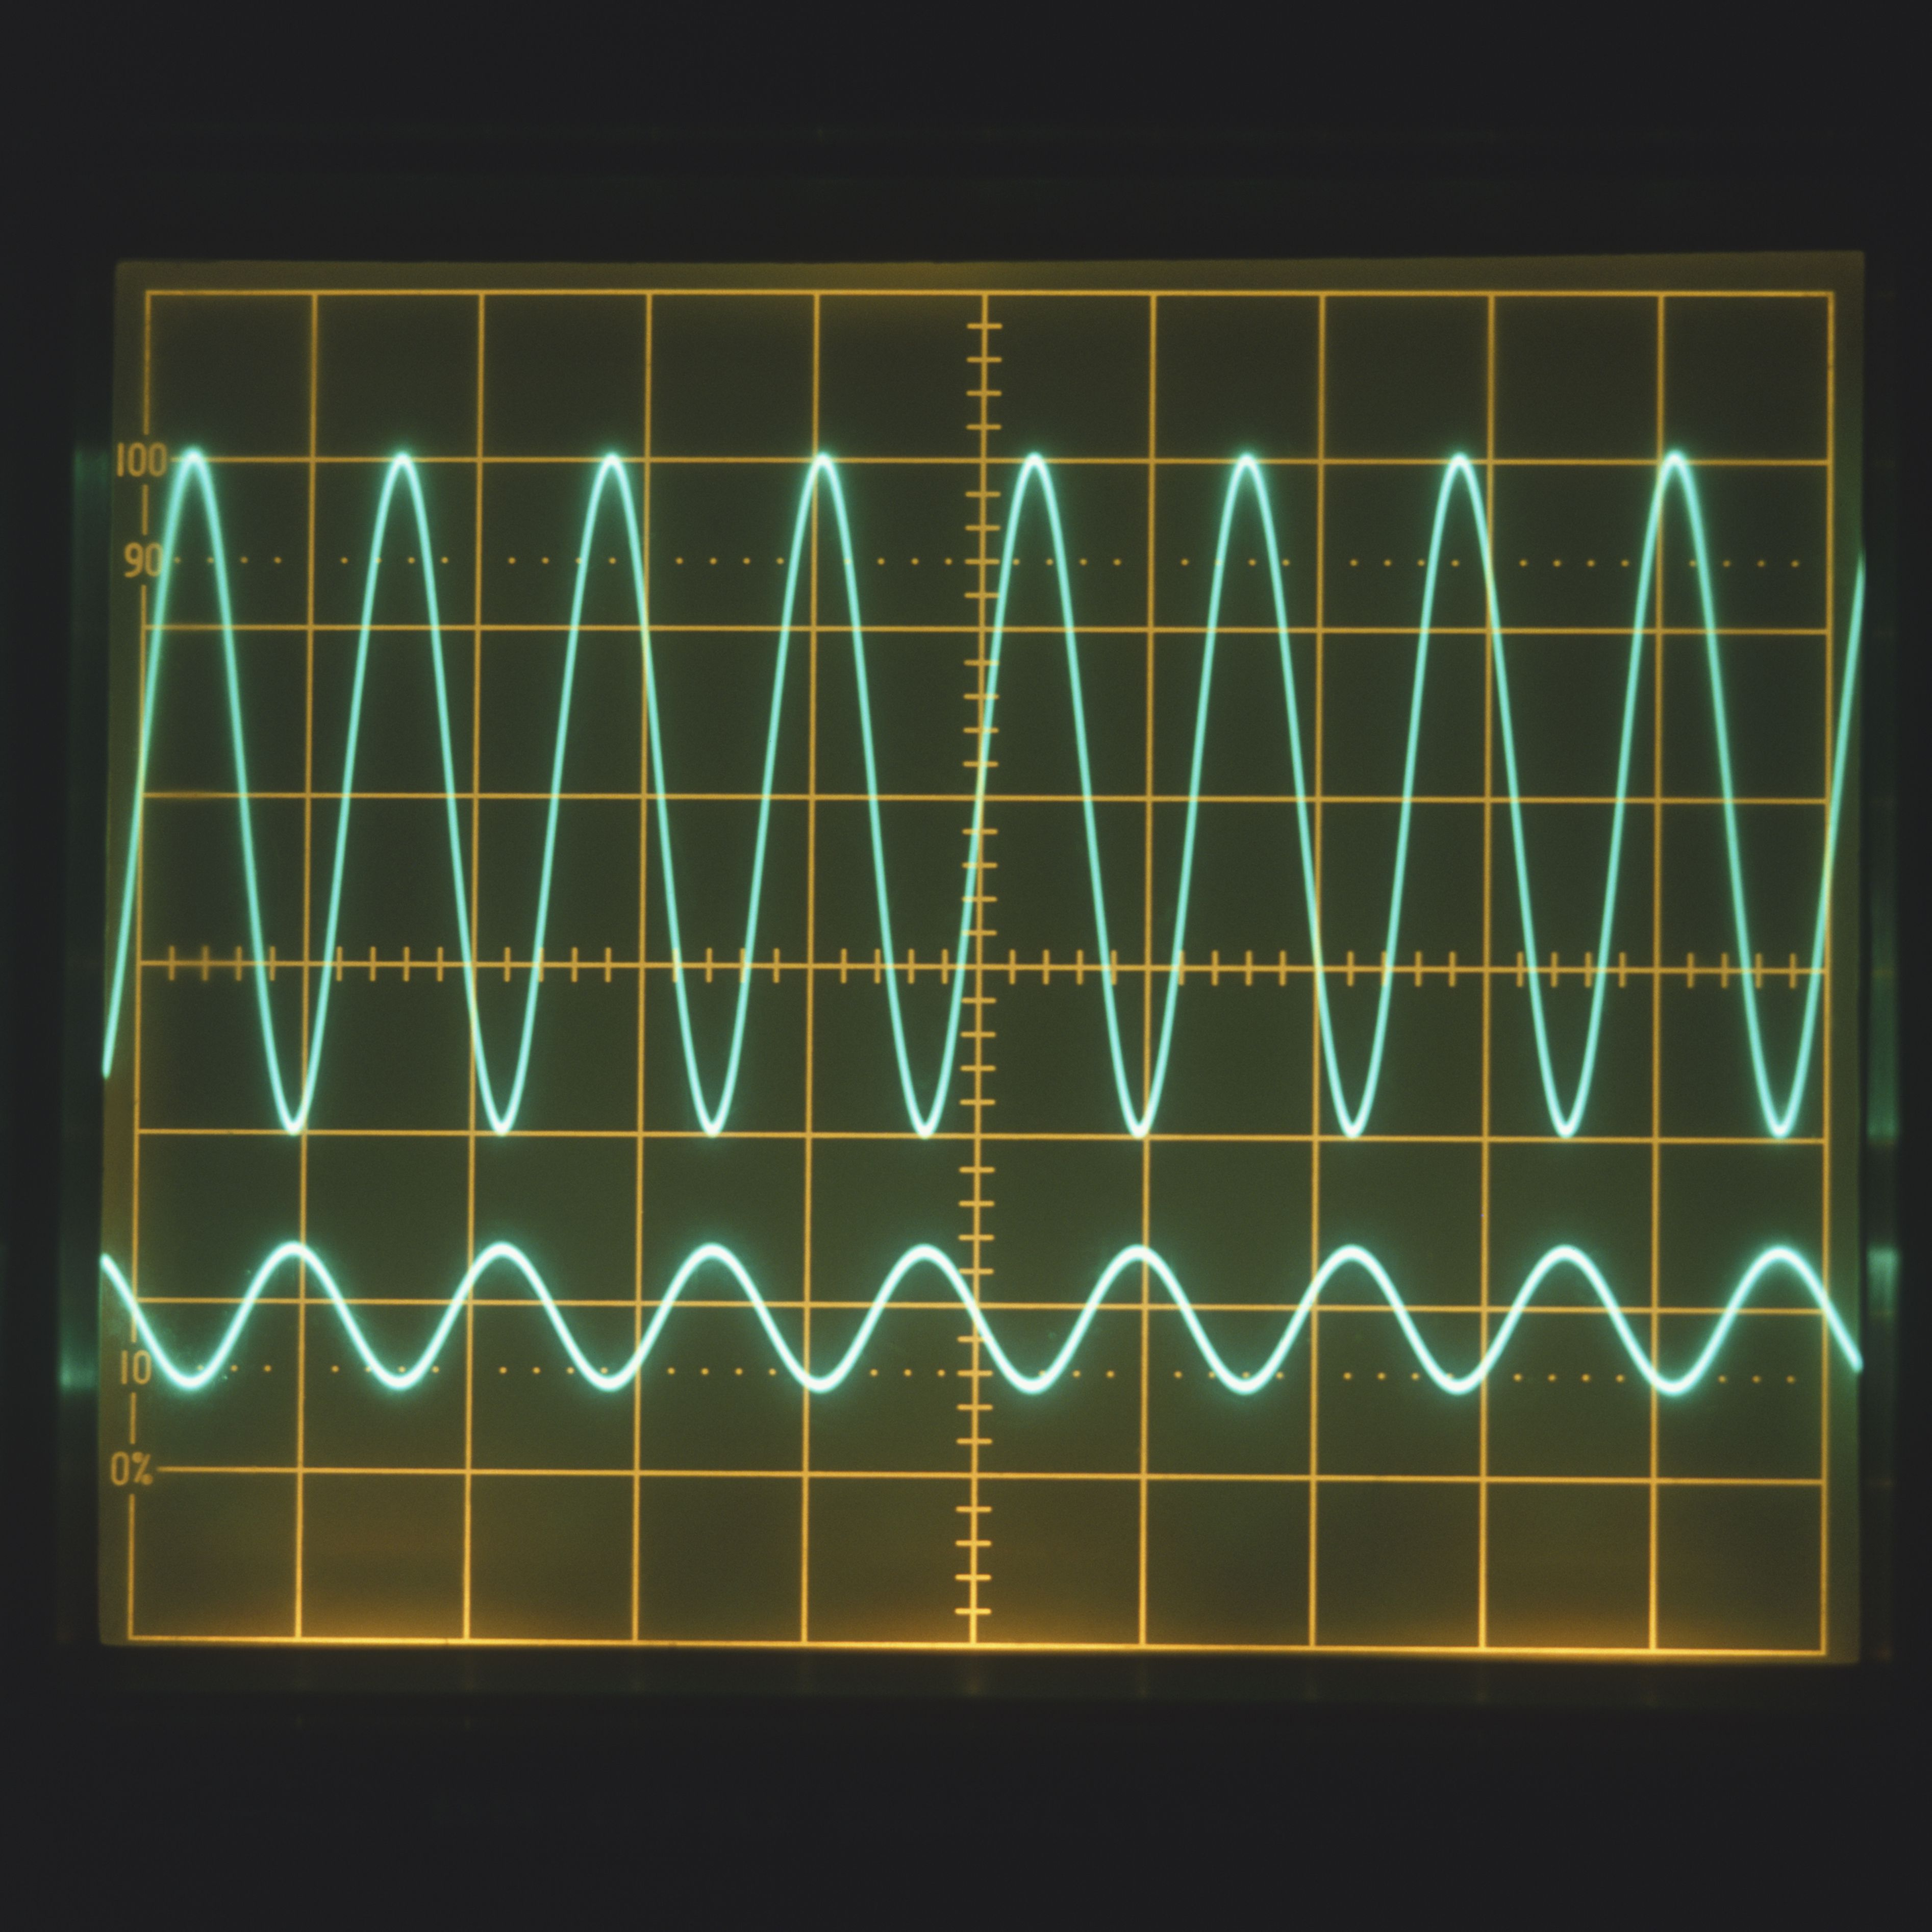 Oscillation and Periodic Motion in Physics